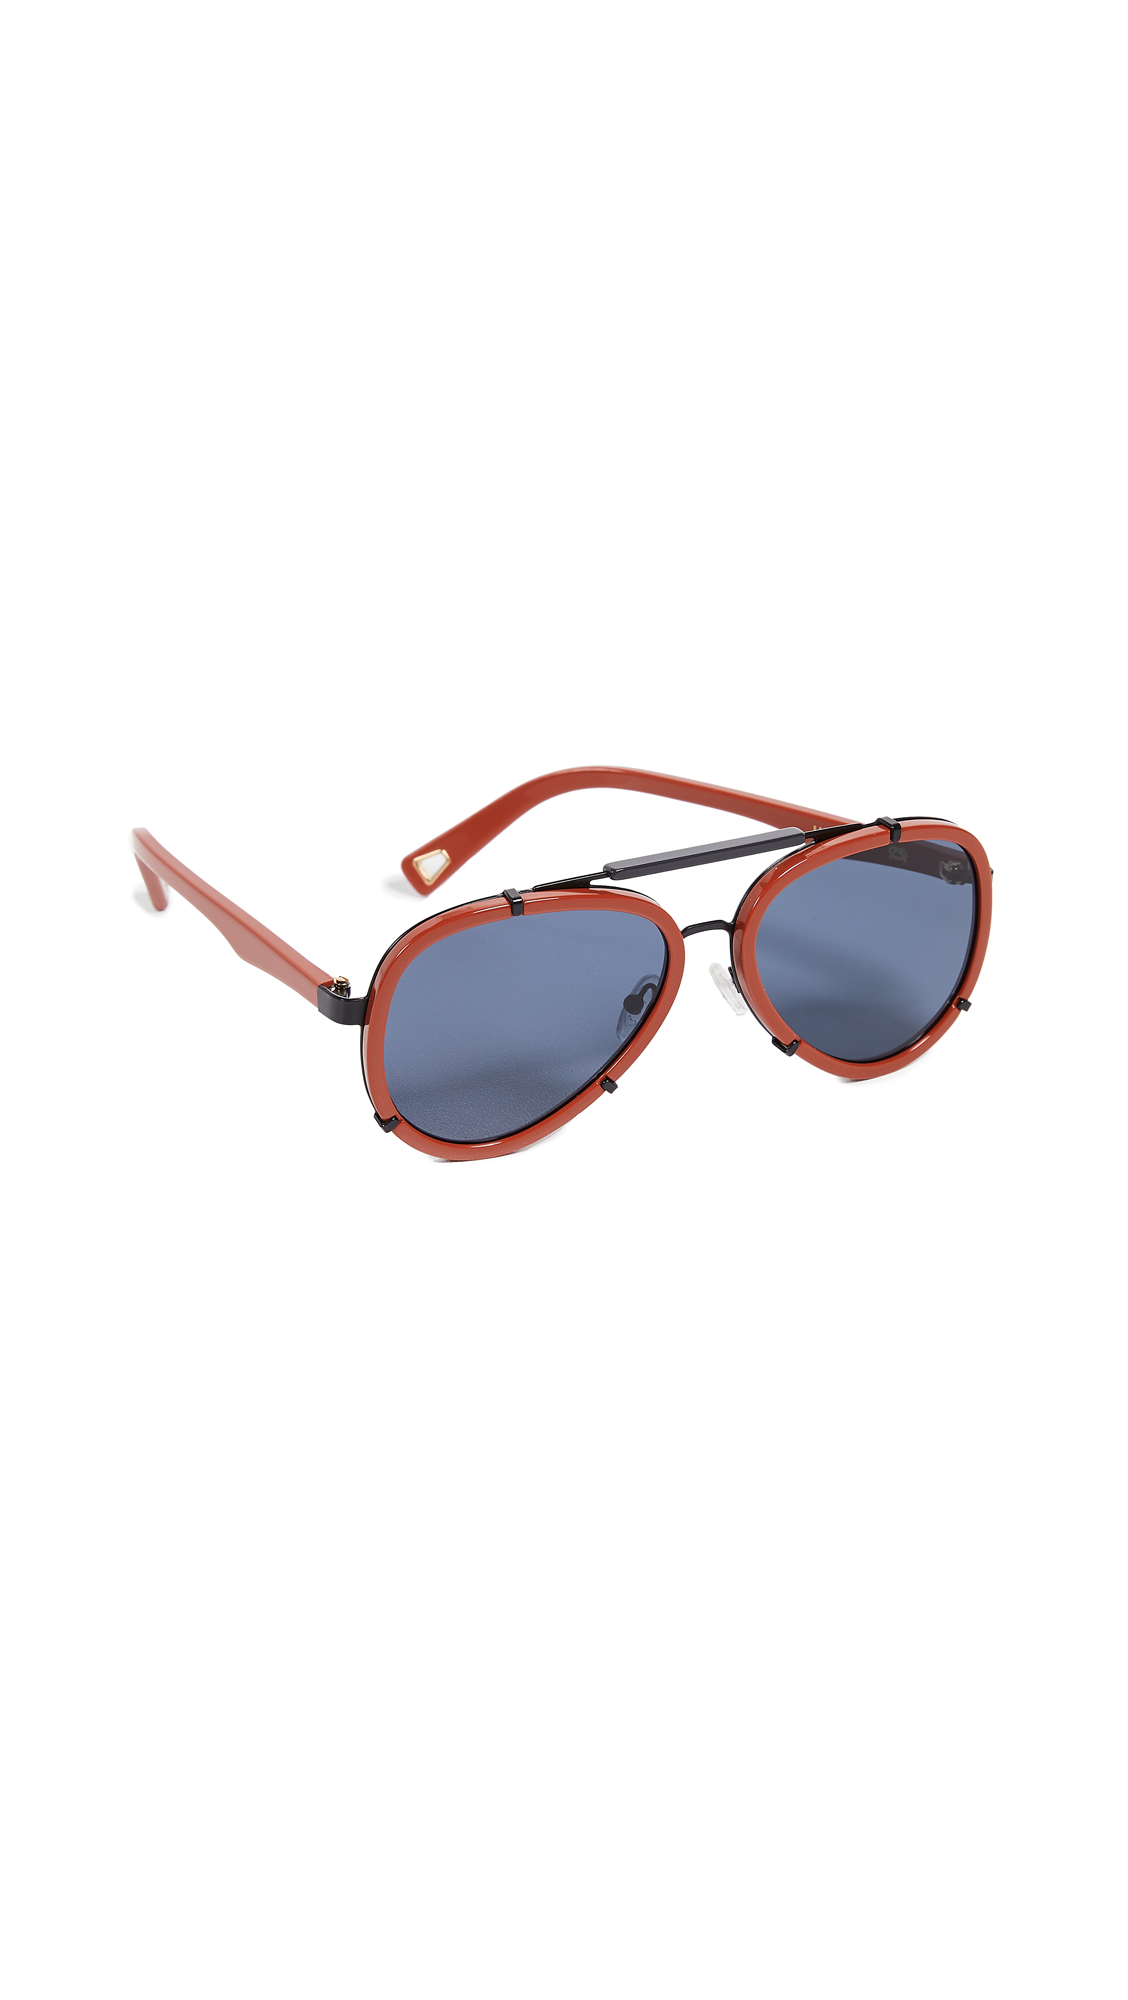 LUCY FOLK Frequent Flyer Sunglasses in Mud